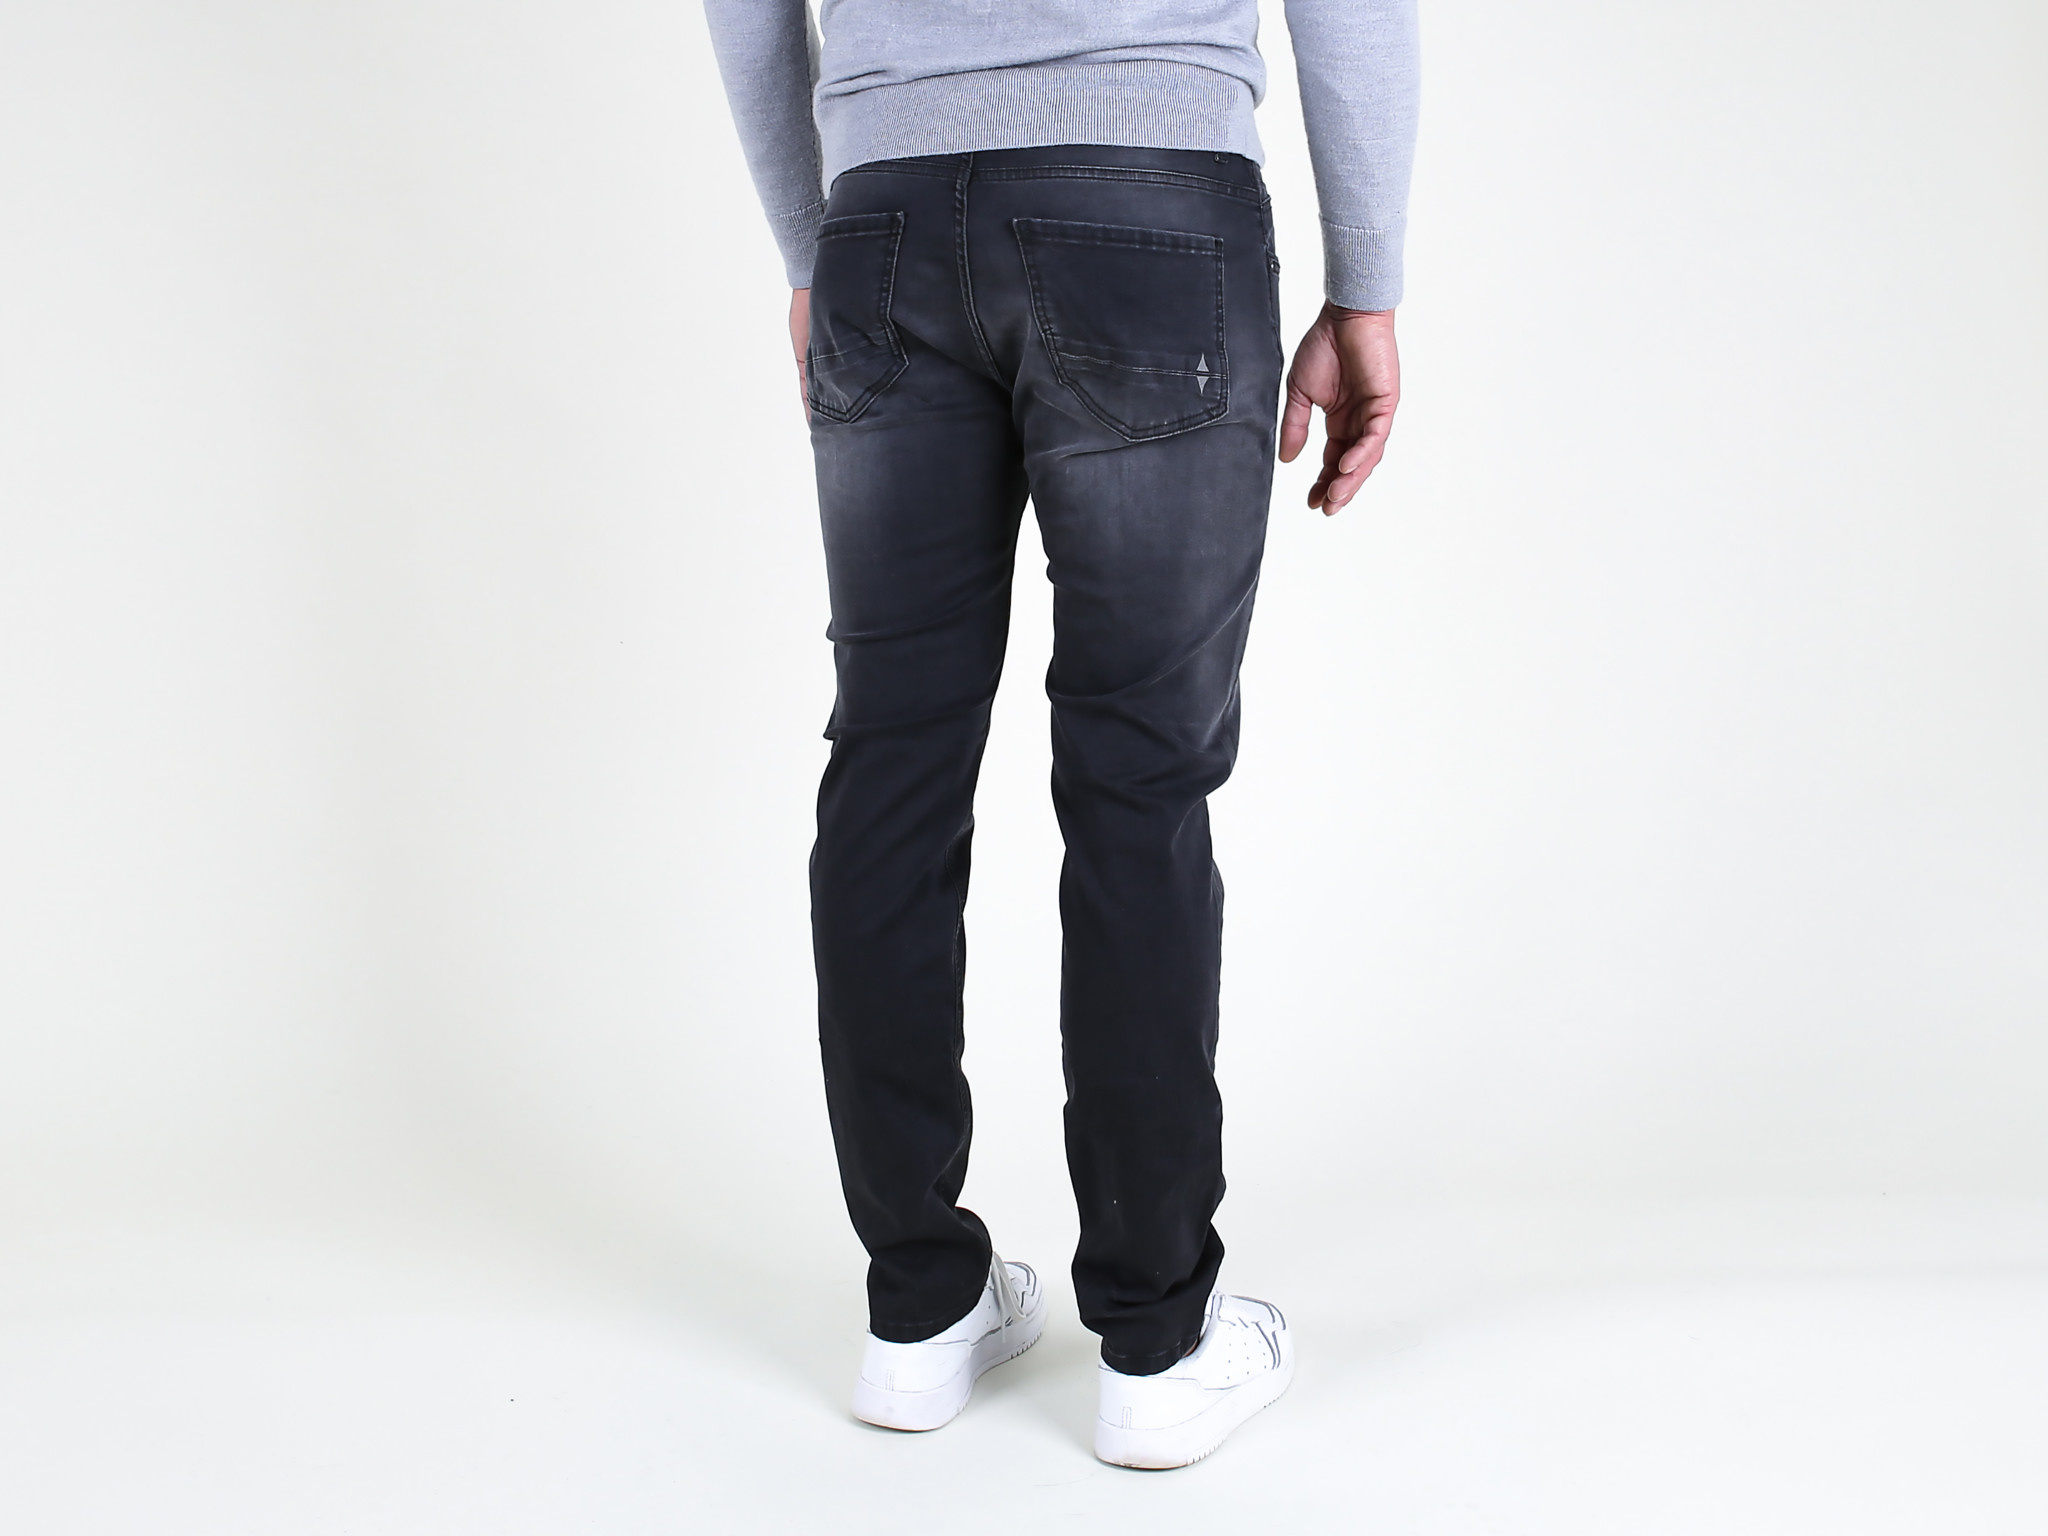 Fifty Four Fifty Four Rages JC74-Z54 Slim Fit Jeans Washed Black